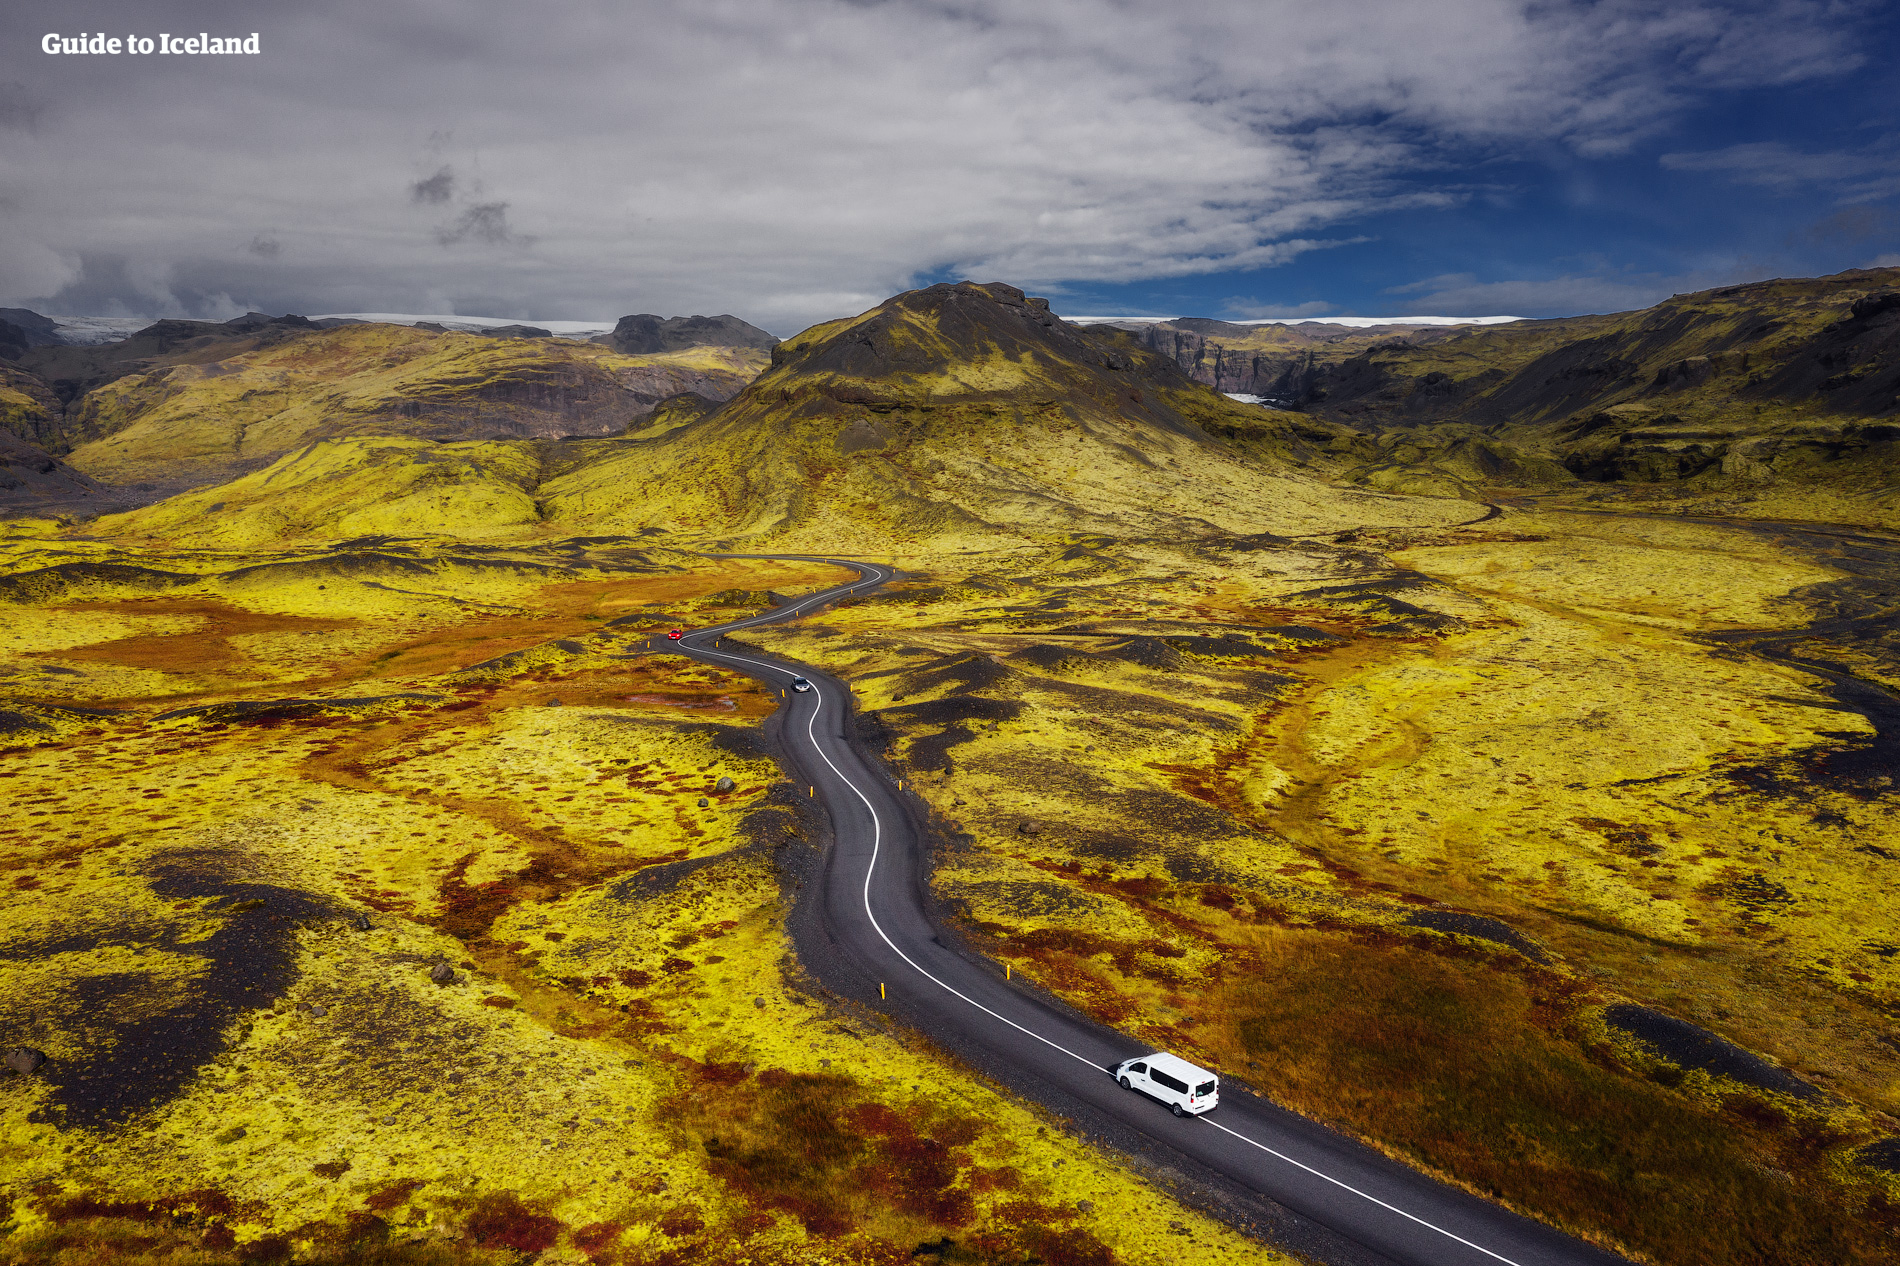 An overhead shot of a road travelling through the South Coast of Iceland.